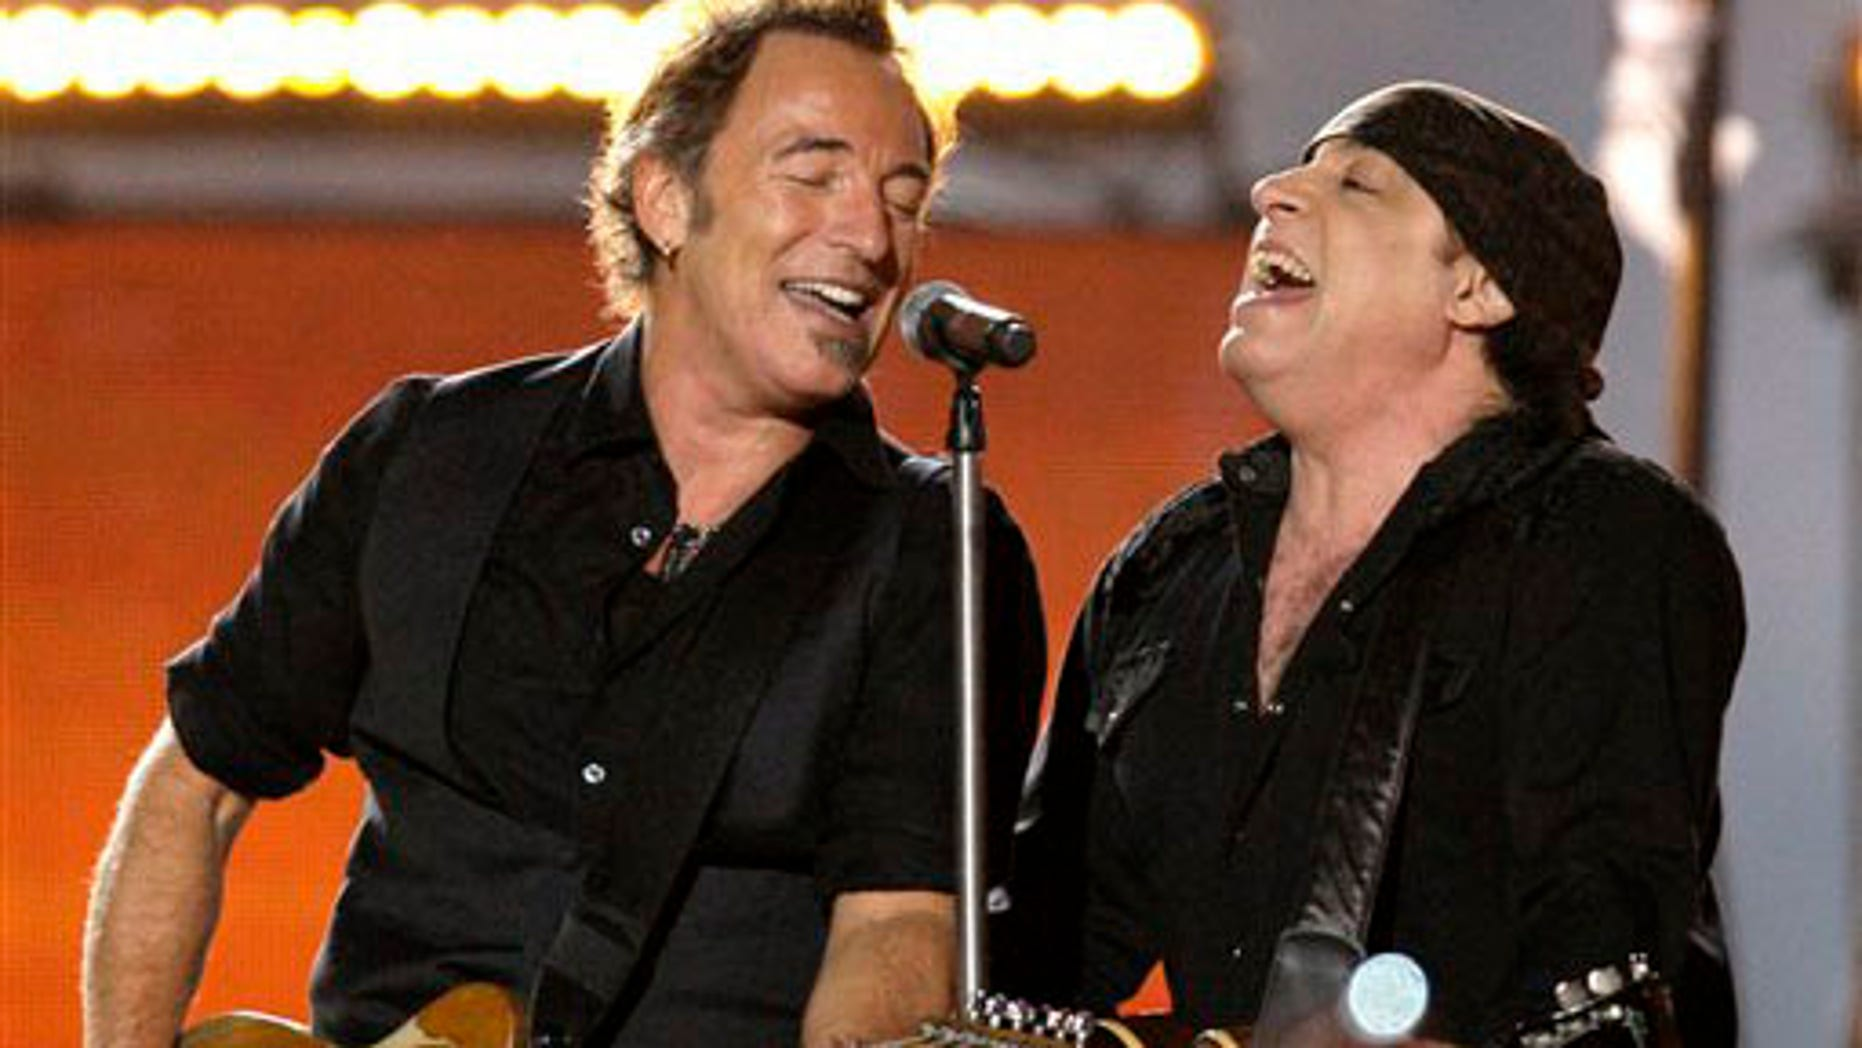 ** FILE ** In this Feb. 1, 2009 file photo, Bruce Springsteen, left, and Steven Van Zandt, of Bruce Springsteen and the E Street Band, perform at halftime at the NFL Super Bowl XLIII football game between the Arizona Cardinals and Pittsburgh Steelers in Tampa, Fla. (AP Photo/Winslow Townson, file)